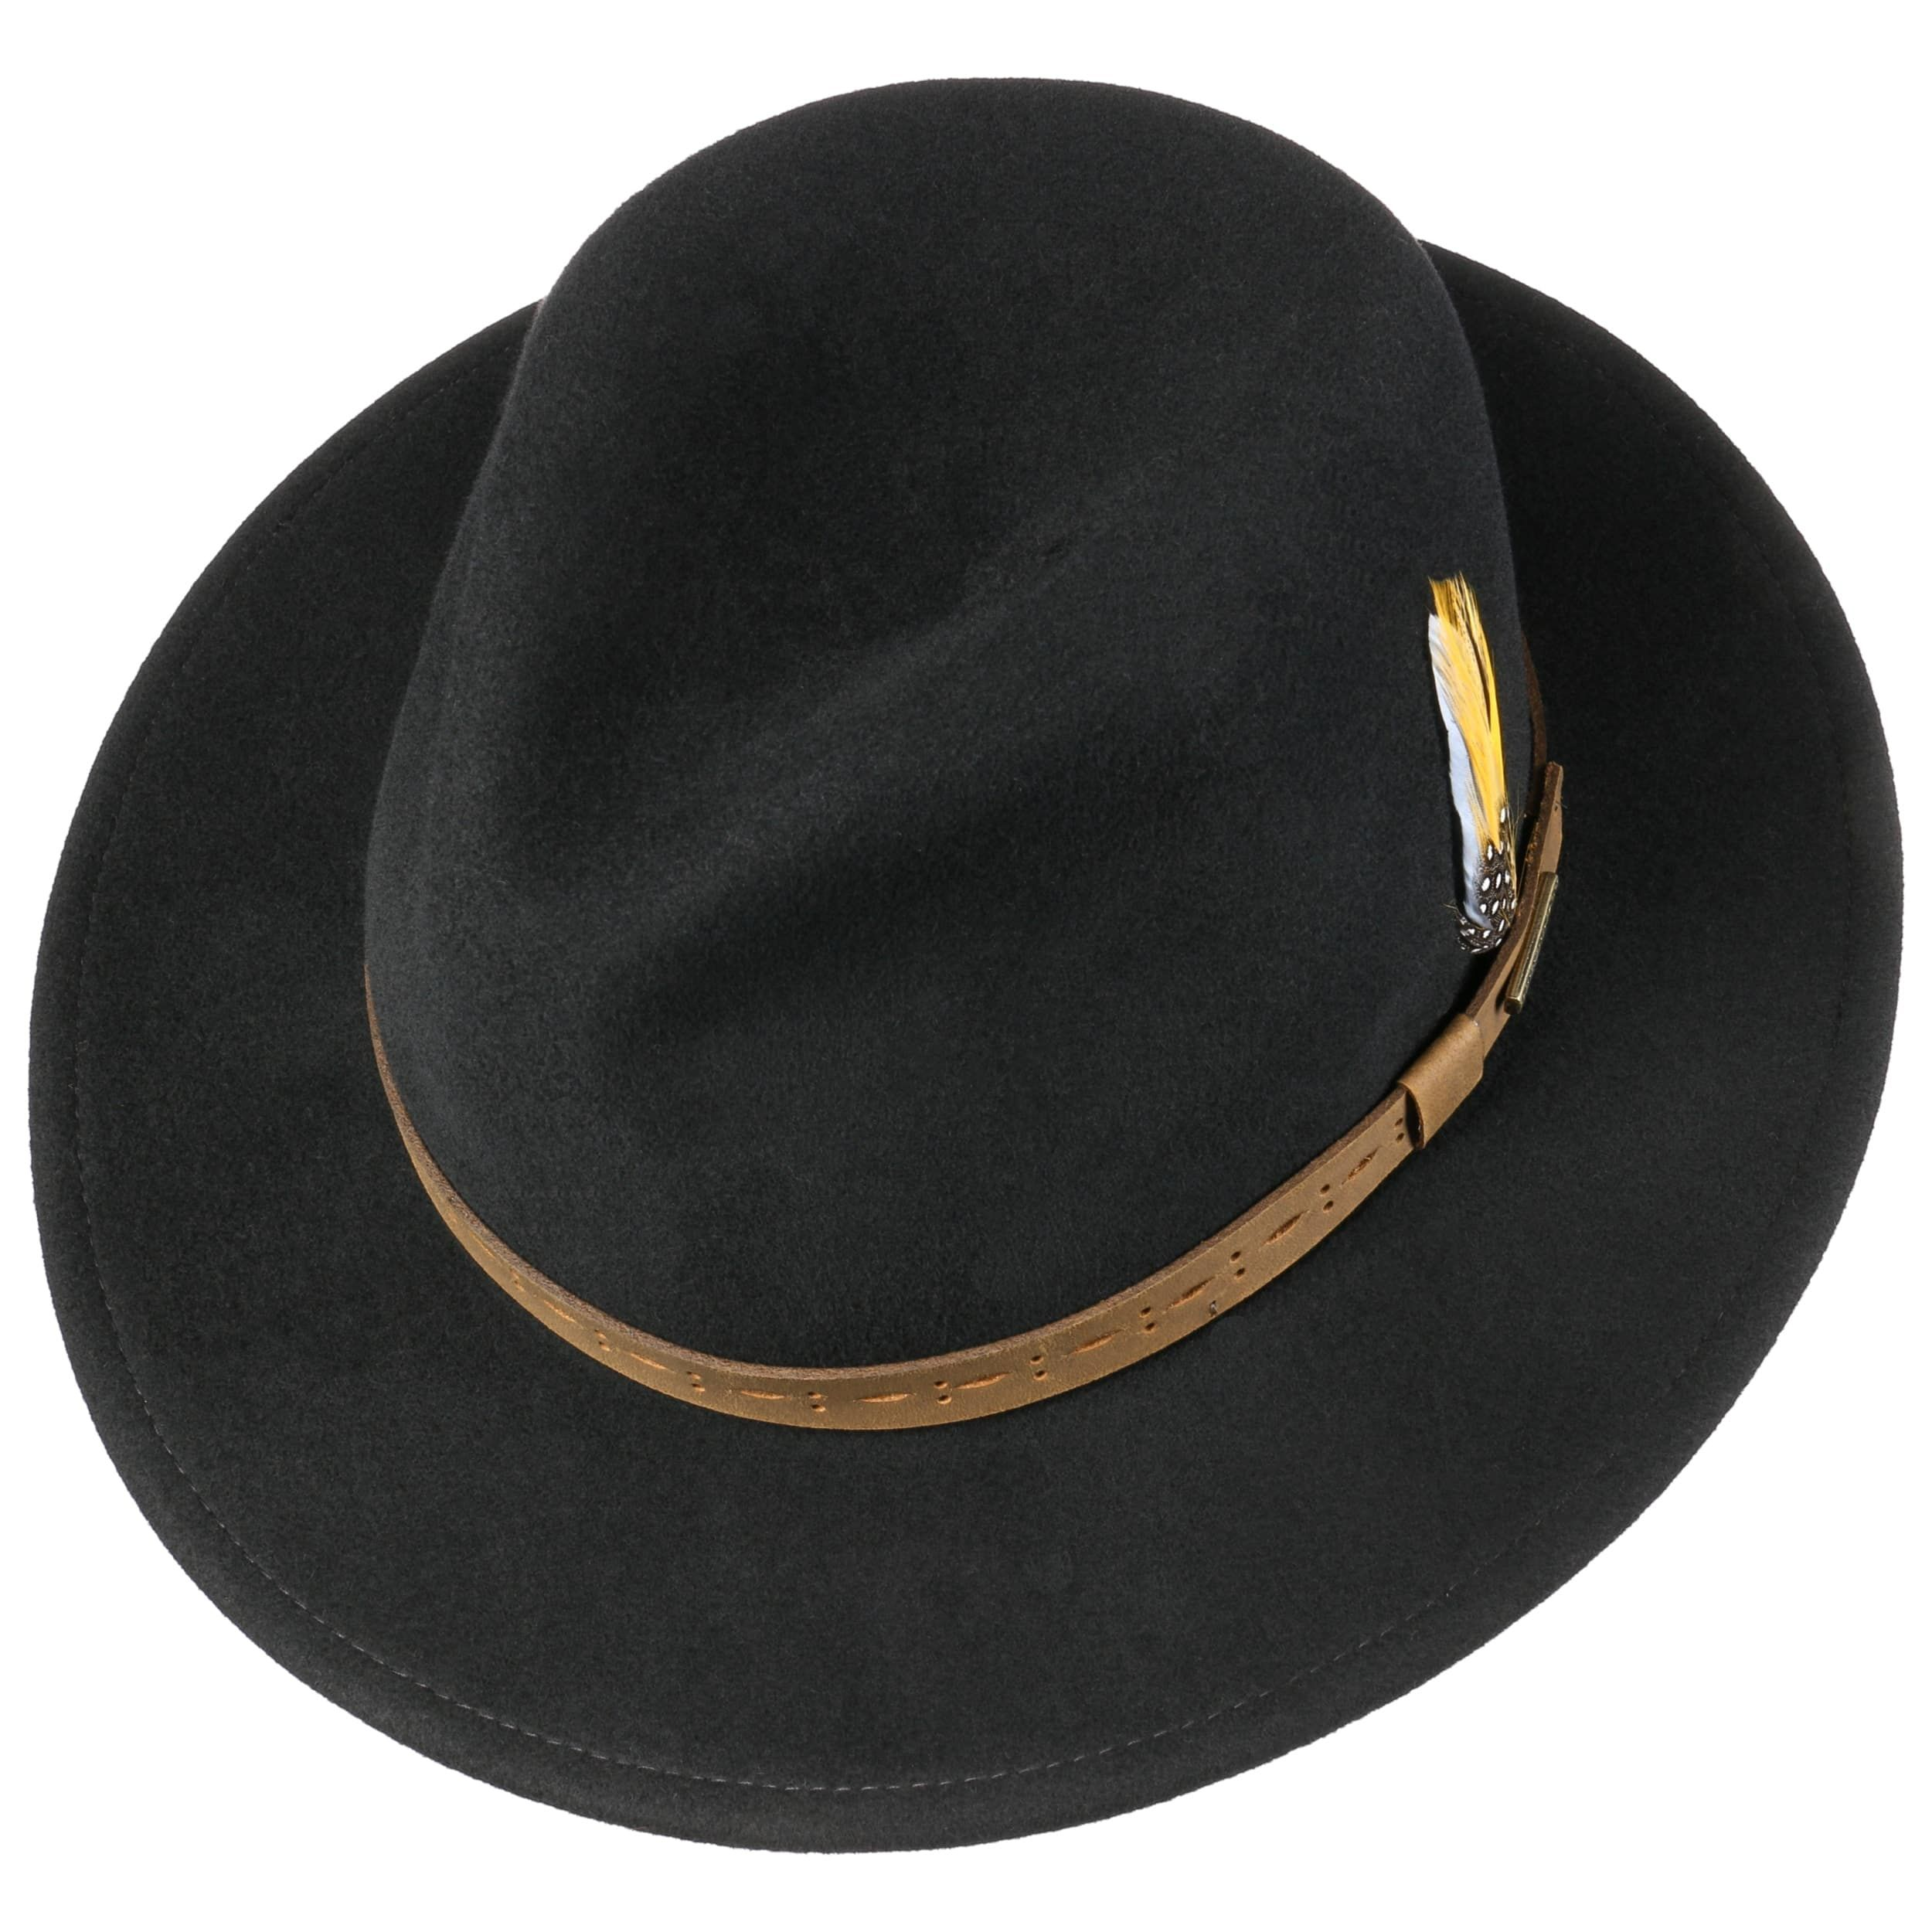 Cutaro VitaFelt Traveller Wool Hat black